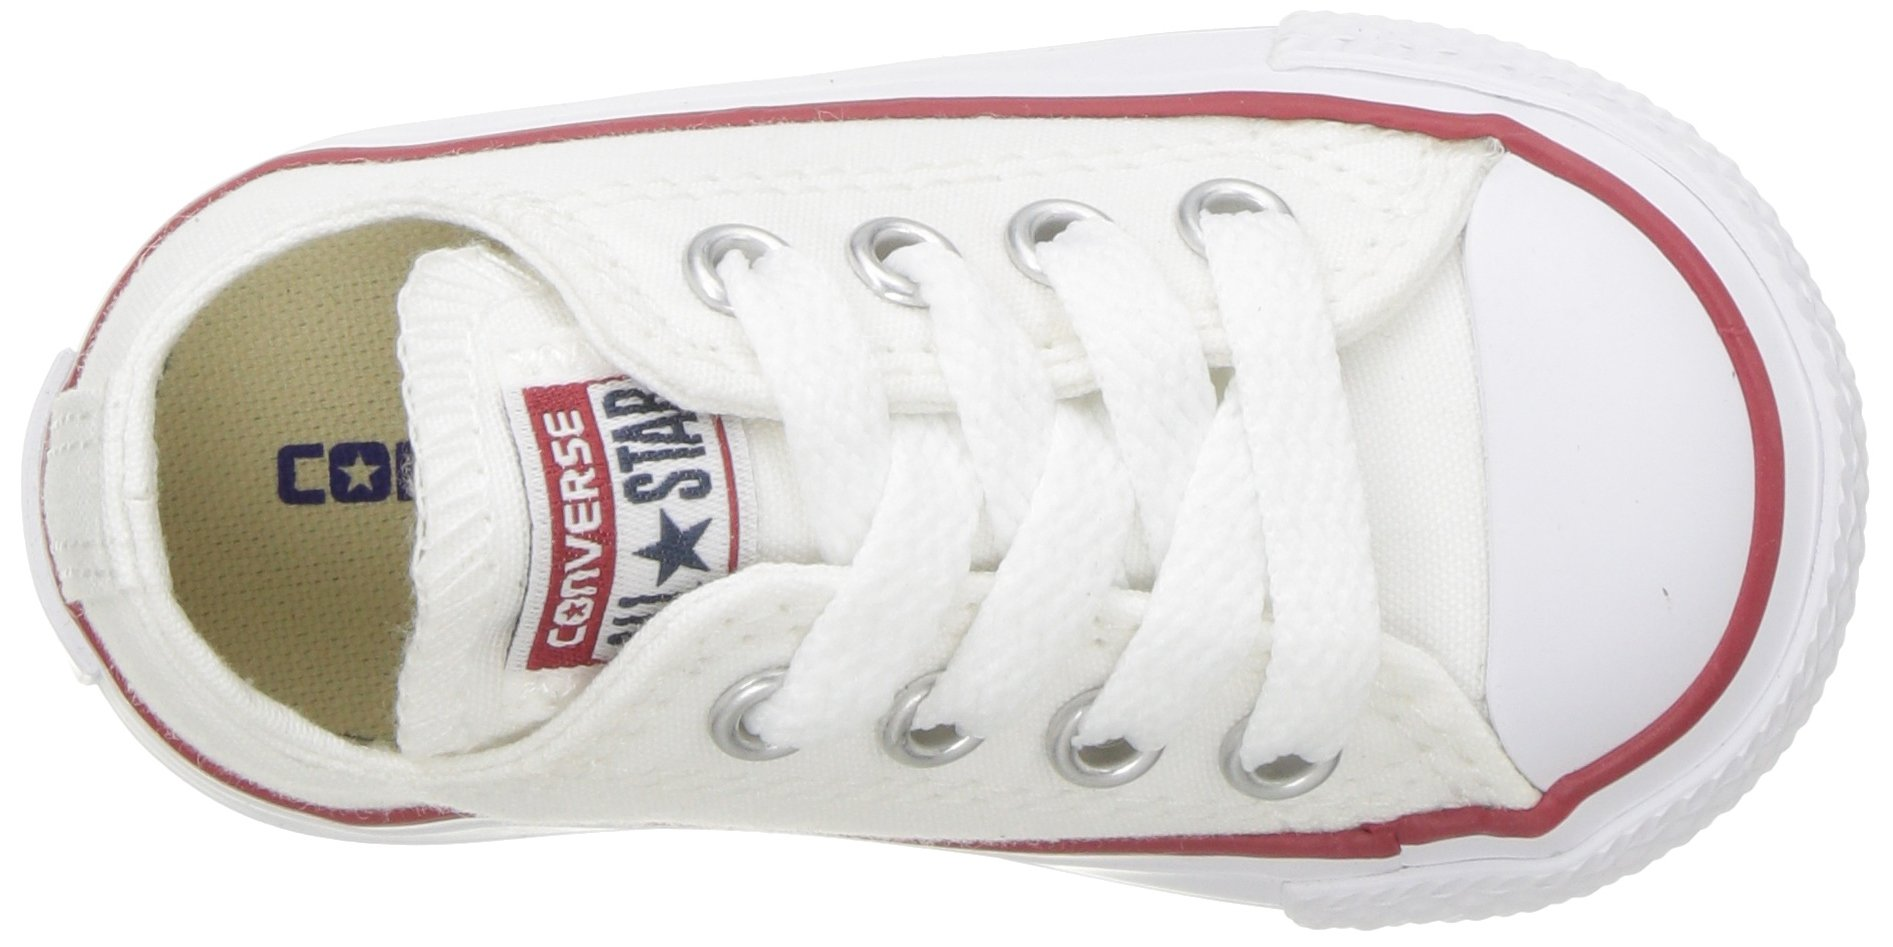 Converse Chuck Taylor All Star Canvas Low Top Sneaker, Optical White, 13.5 M US Little Kid by Converse (Image #12)